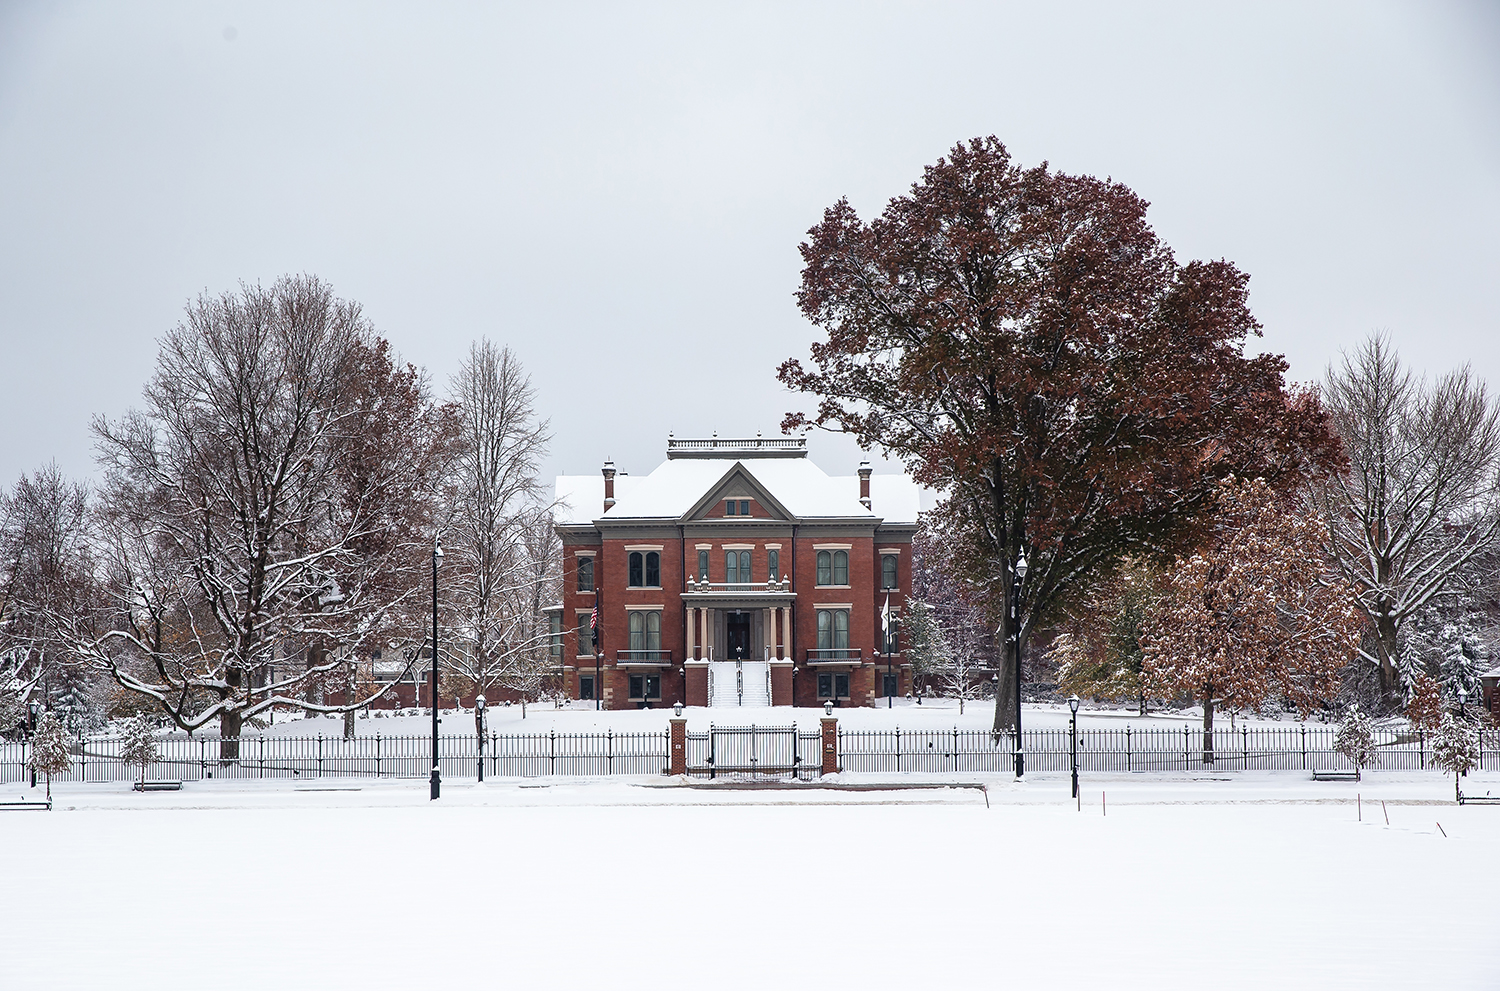 The Illinois Governor's Mansion is blanketed with snow with leaves still on the tree after a November snow storm dumped over five inches of snow overnight across the area, Thursday, Nov. 15, 2018, in Springfield, Ill. [Justin L. Fowler/The State Journal-Register]